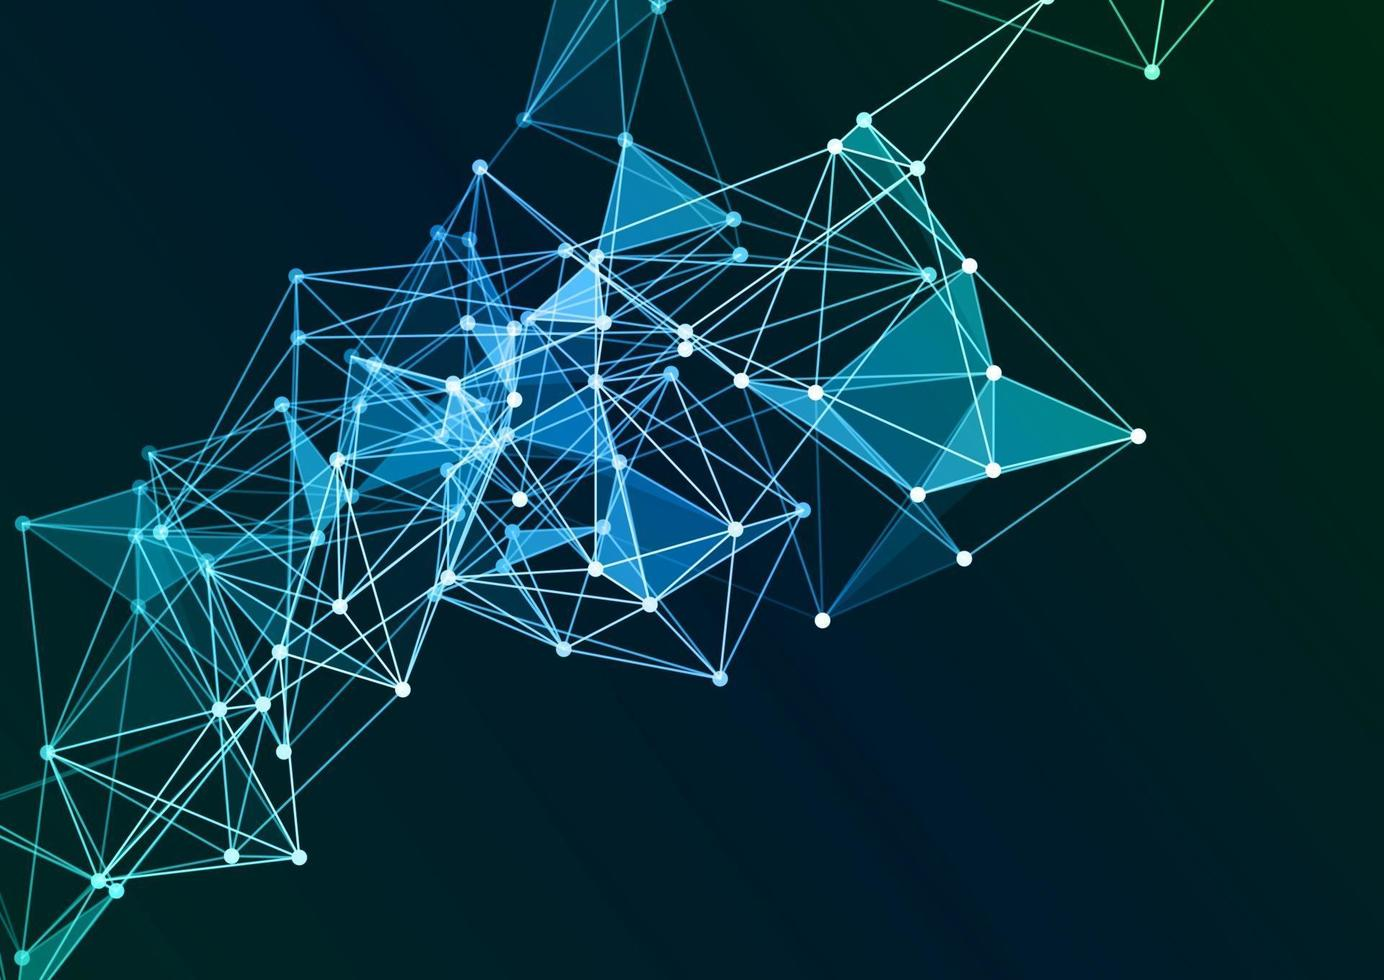 Abstract background with a network connections background design vector